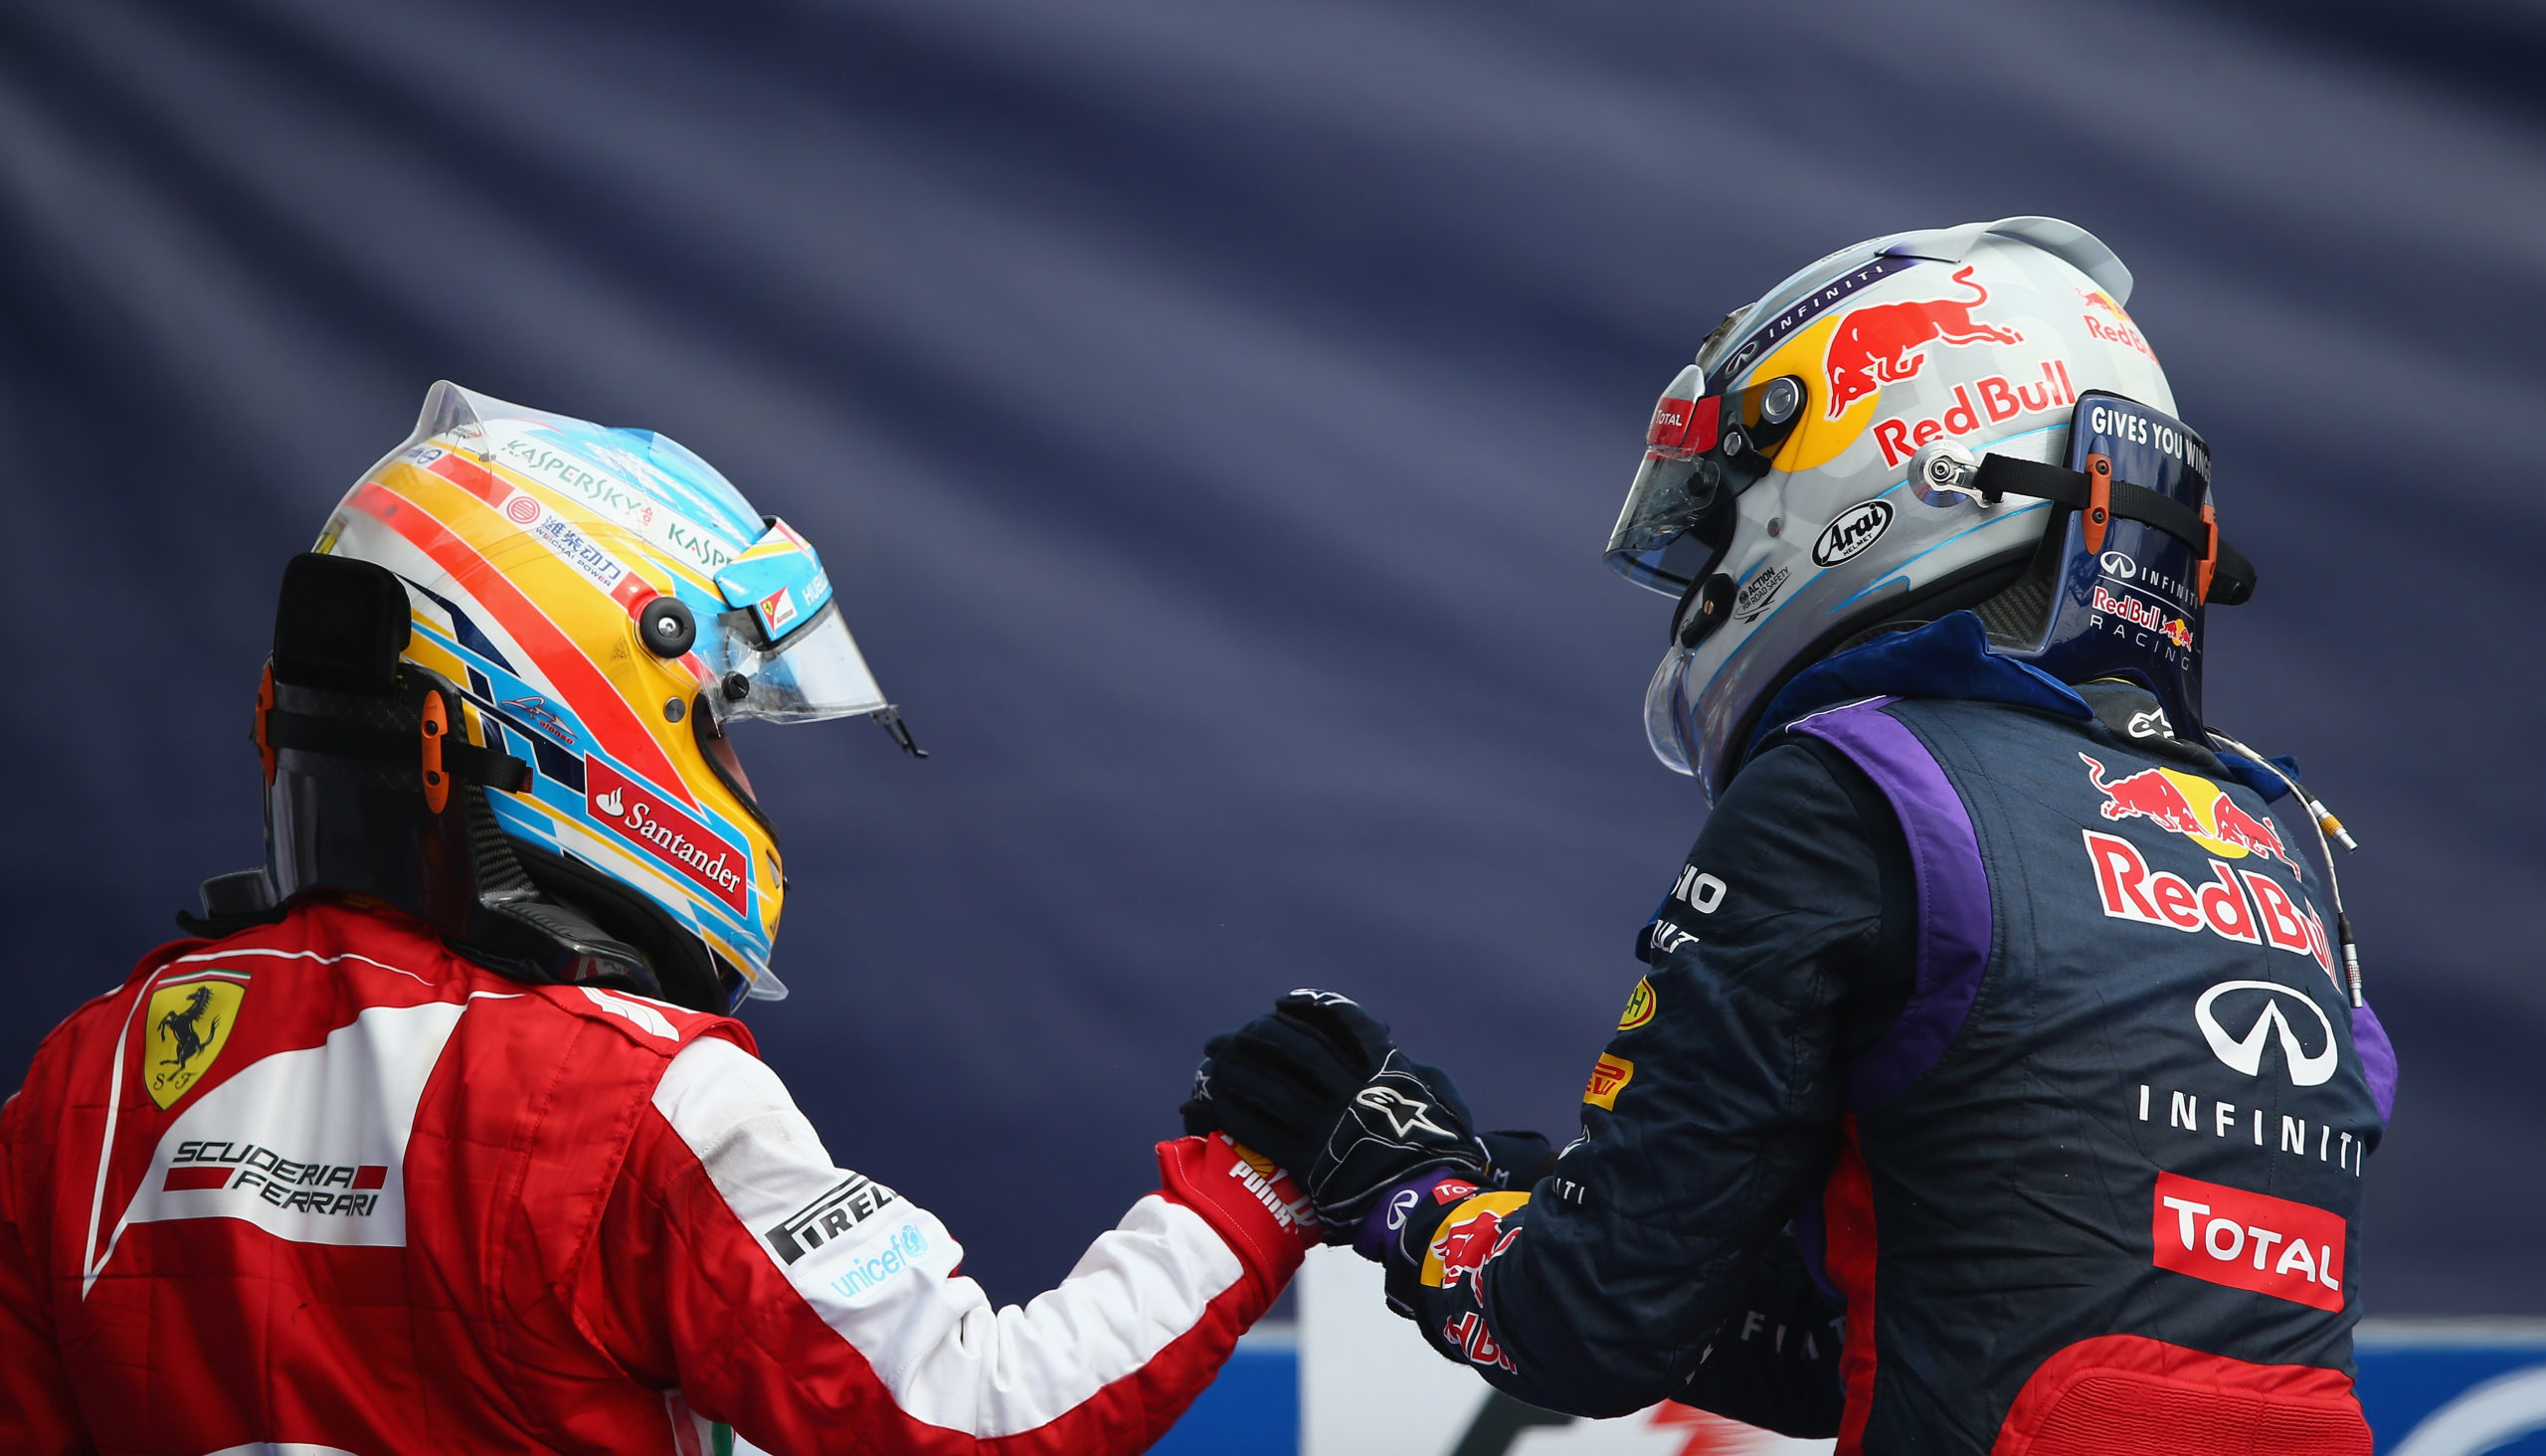 Race winner Sebastian Vettel (R) of Germany and Infiniti Red Bull Racing is congratulated by second placed Fernando Alonso (L) of Spain and Ferrari following the Italian Formula One Grand Prix at Autodromo di Monza in Monza, Italy on September 8th, 2013 // Getty Images / Red Bull Content Pool  // 1378659844563-1957654718 // Usage for editorial use only //